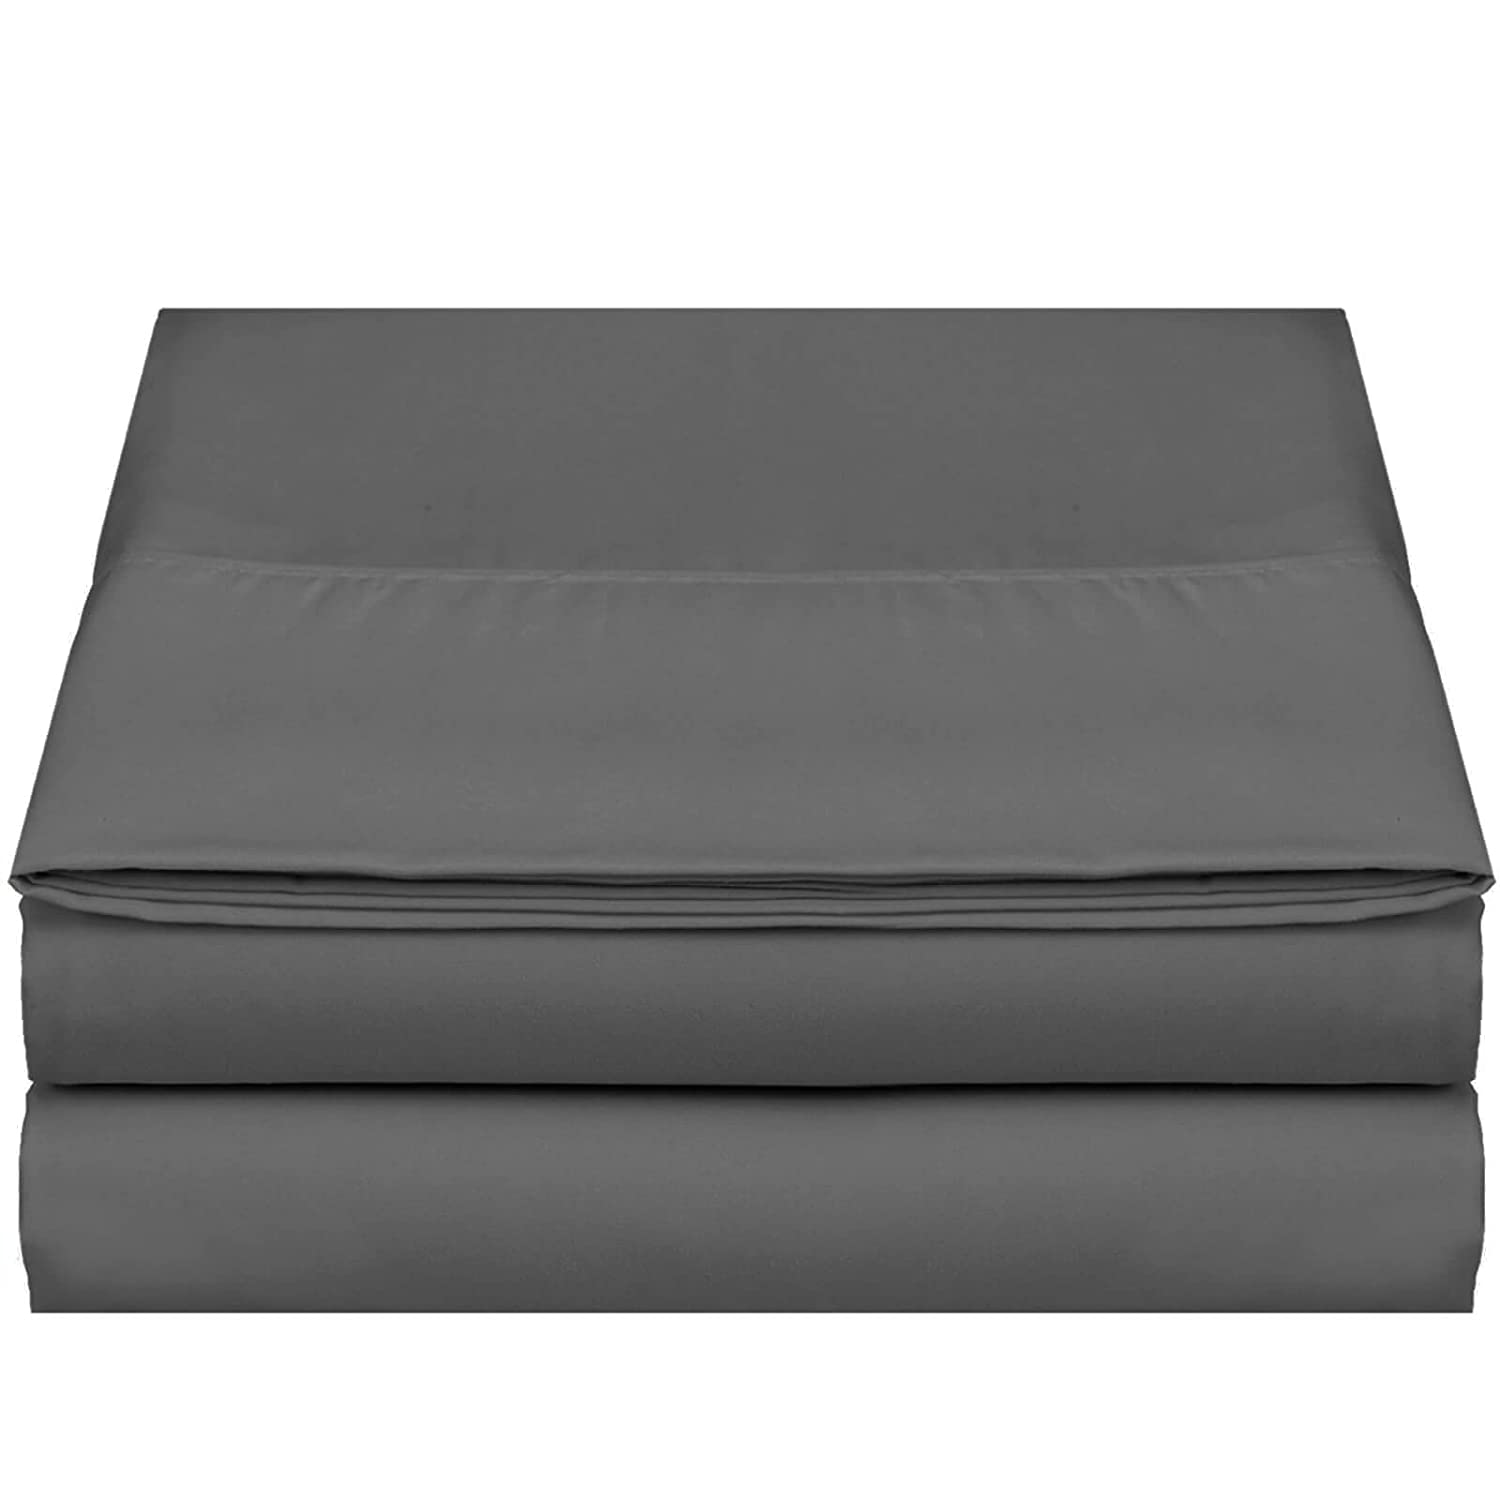 """Taupe Sand 2-Pack /""""110 GSM/"""" Top Bed Sheets Double Brushed Microfiber Thick and Comfortable Flat Sheets Set Full Empyrean Bedding Premium Flat Sheets Luxurious /& Soft Hotel Hypoallergenic"""